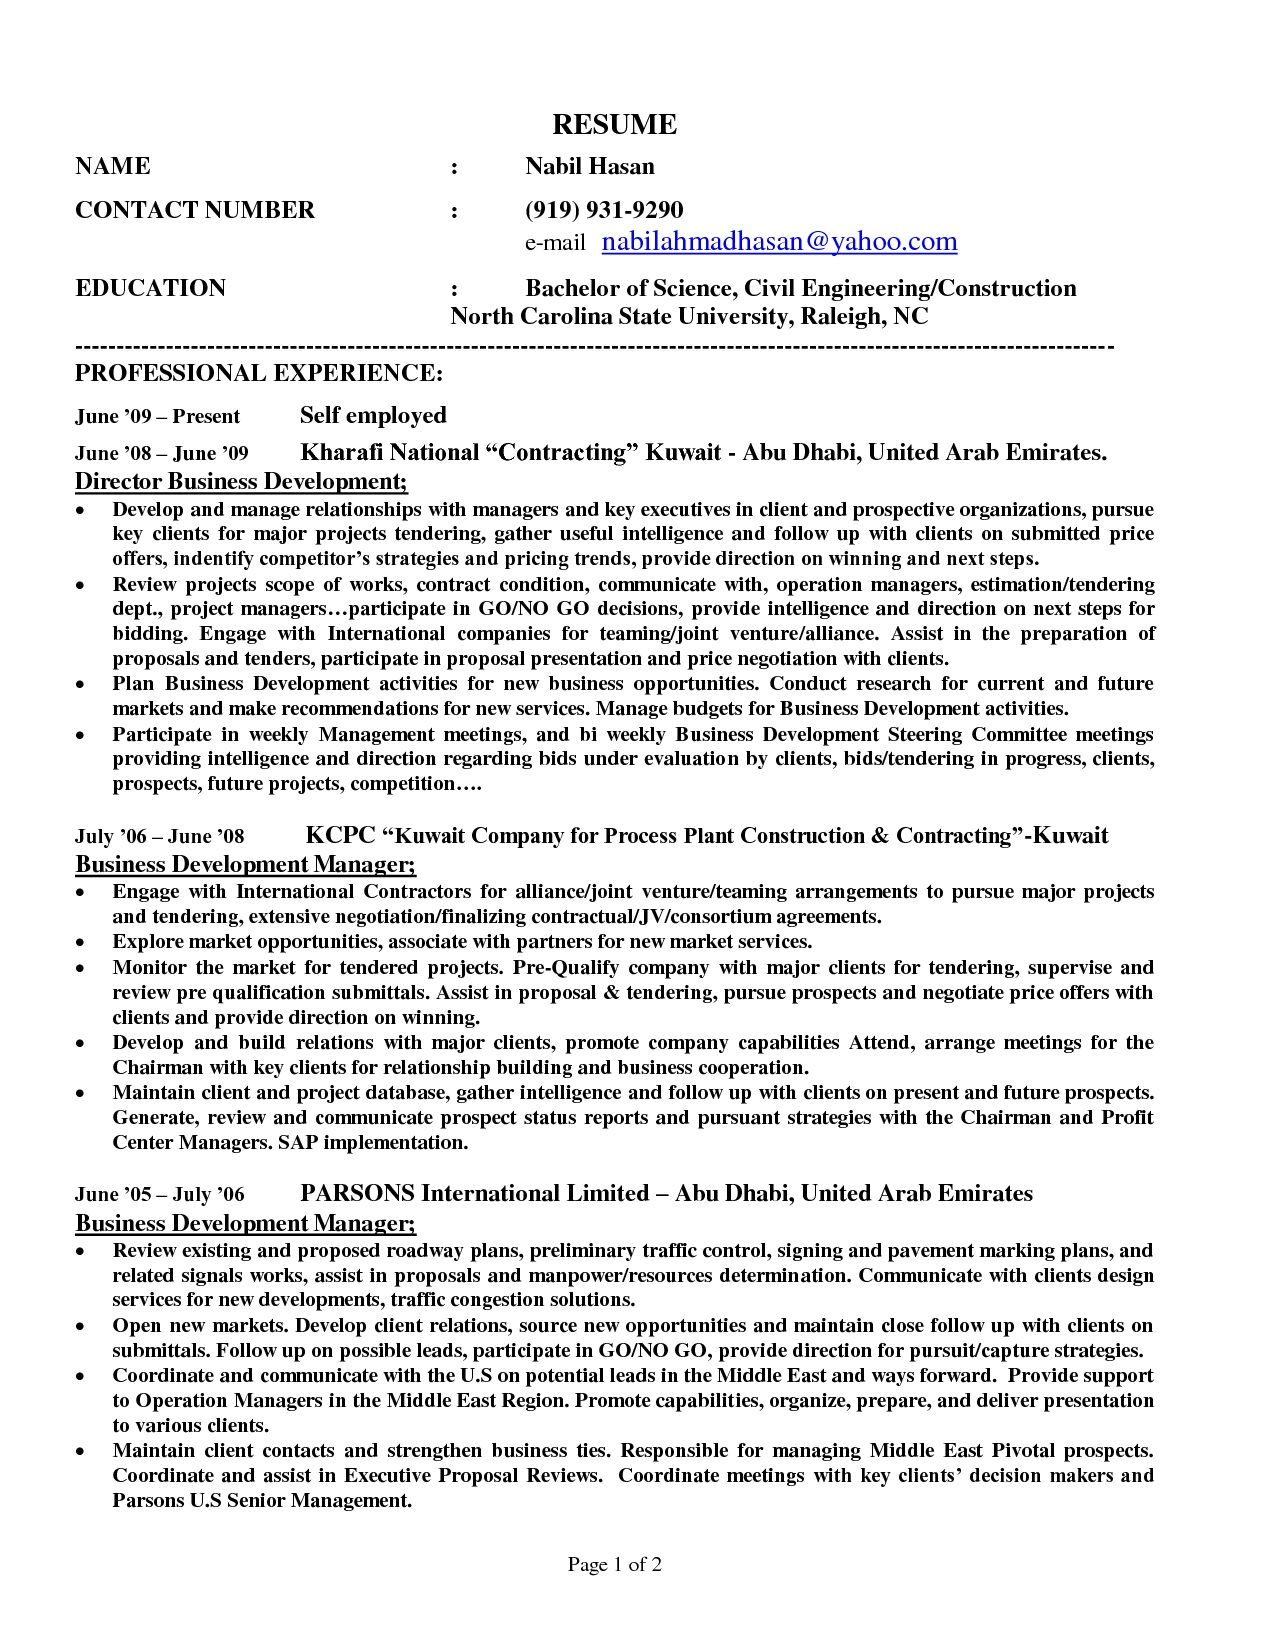 Self Employed Resume Templates Yolarnetonic